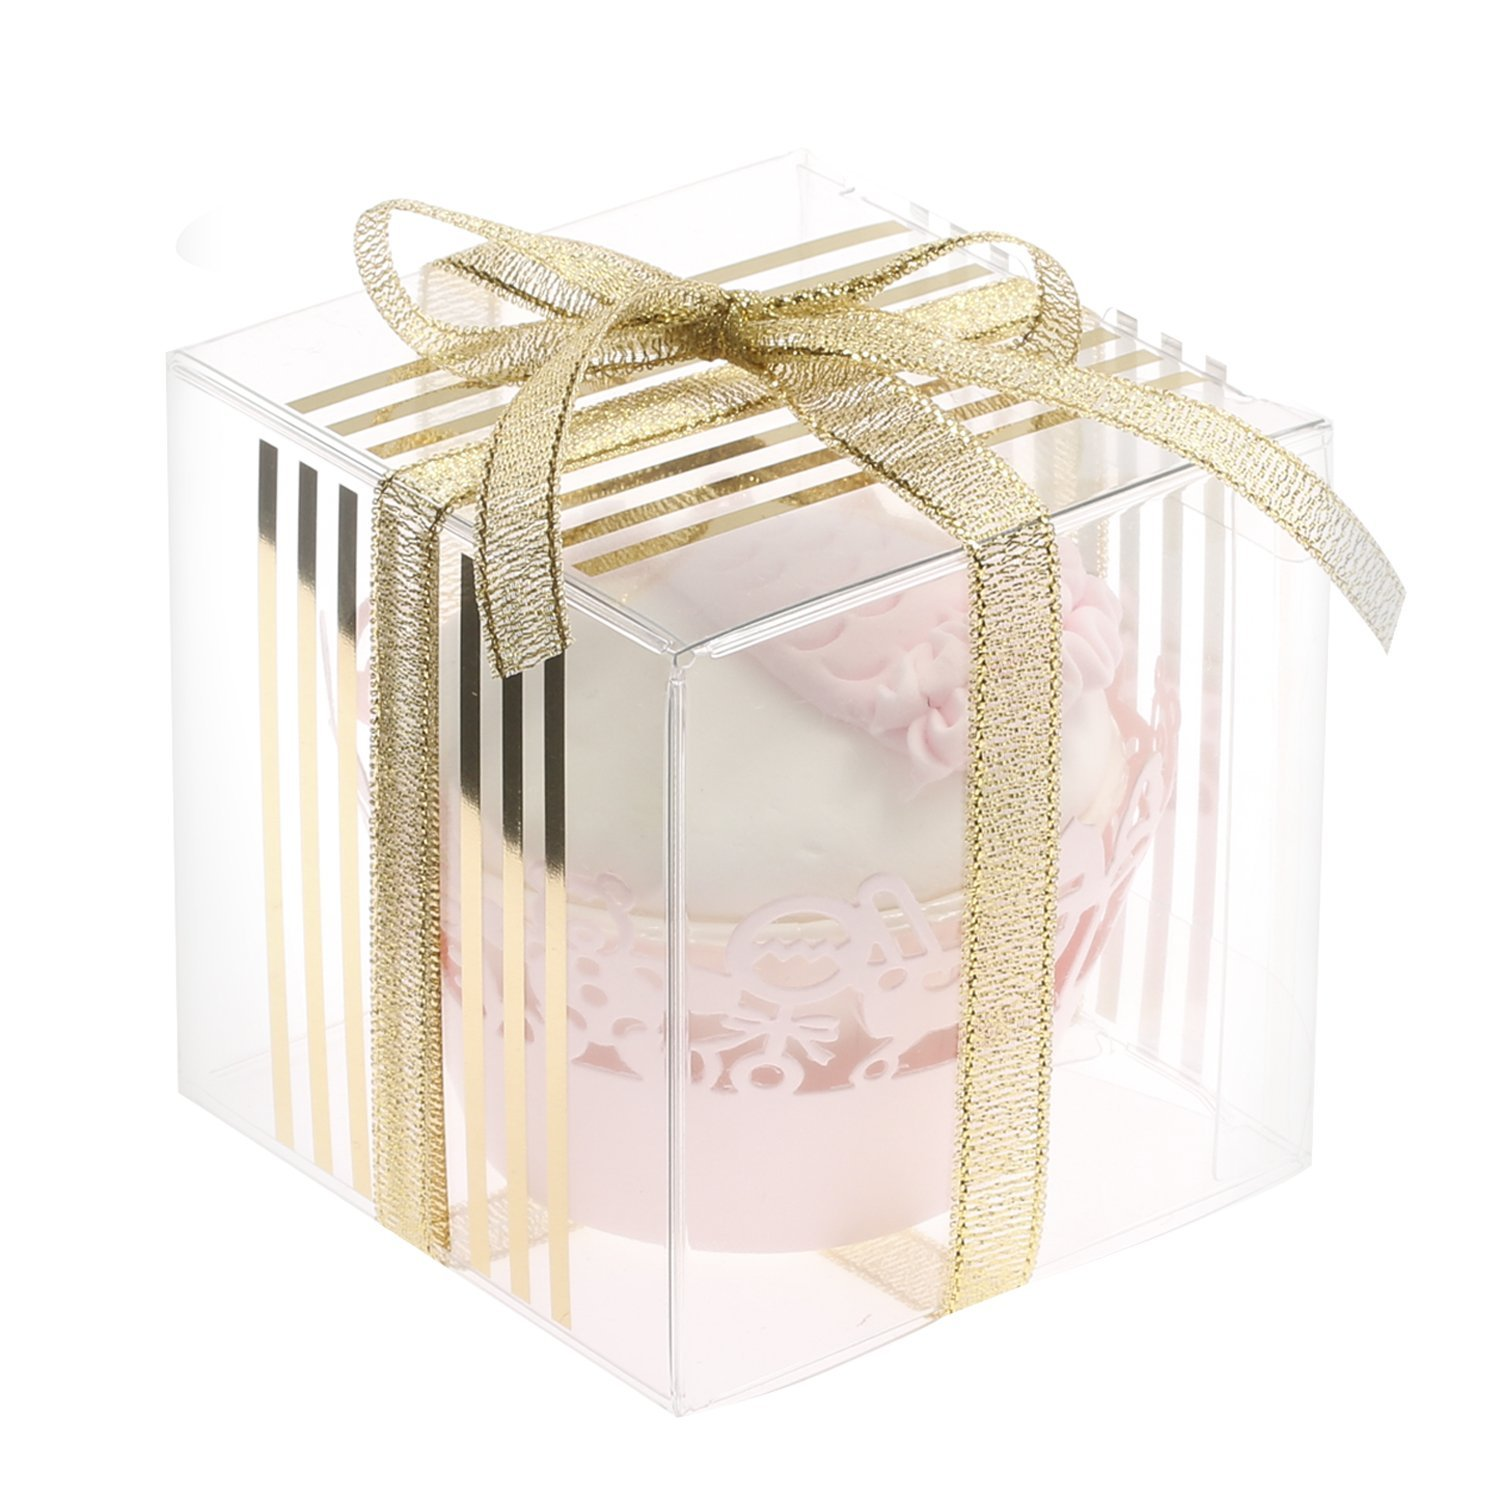 Lings Moment 100 Pcs 3x3x3 Gold Favor Box Clear Cake Boxes For